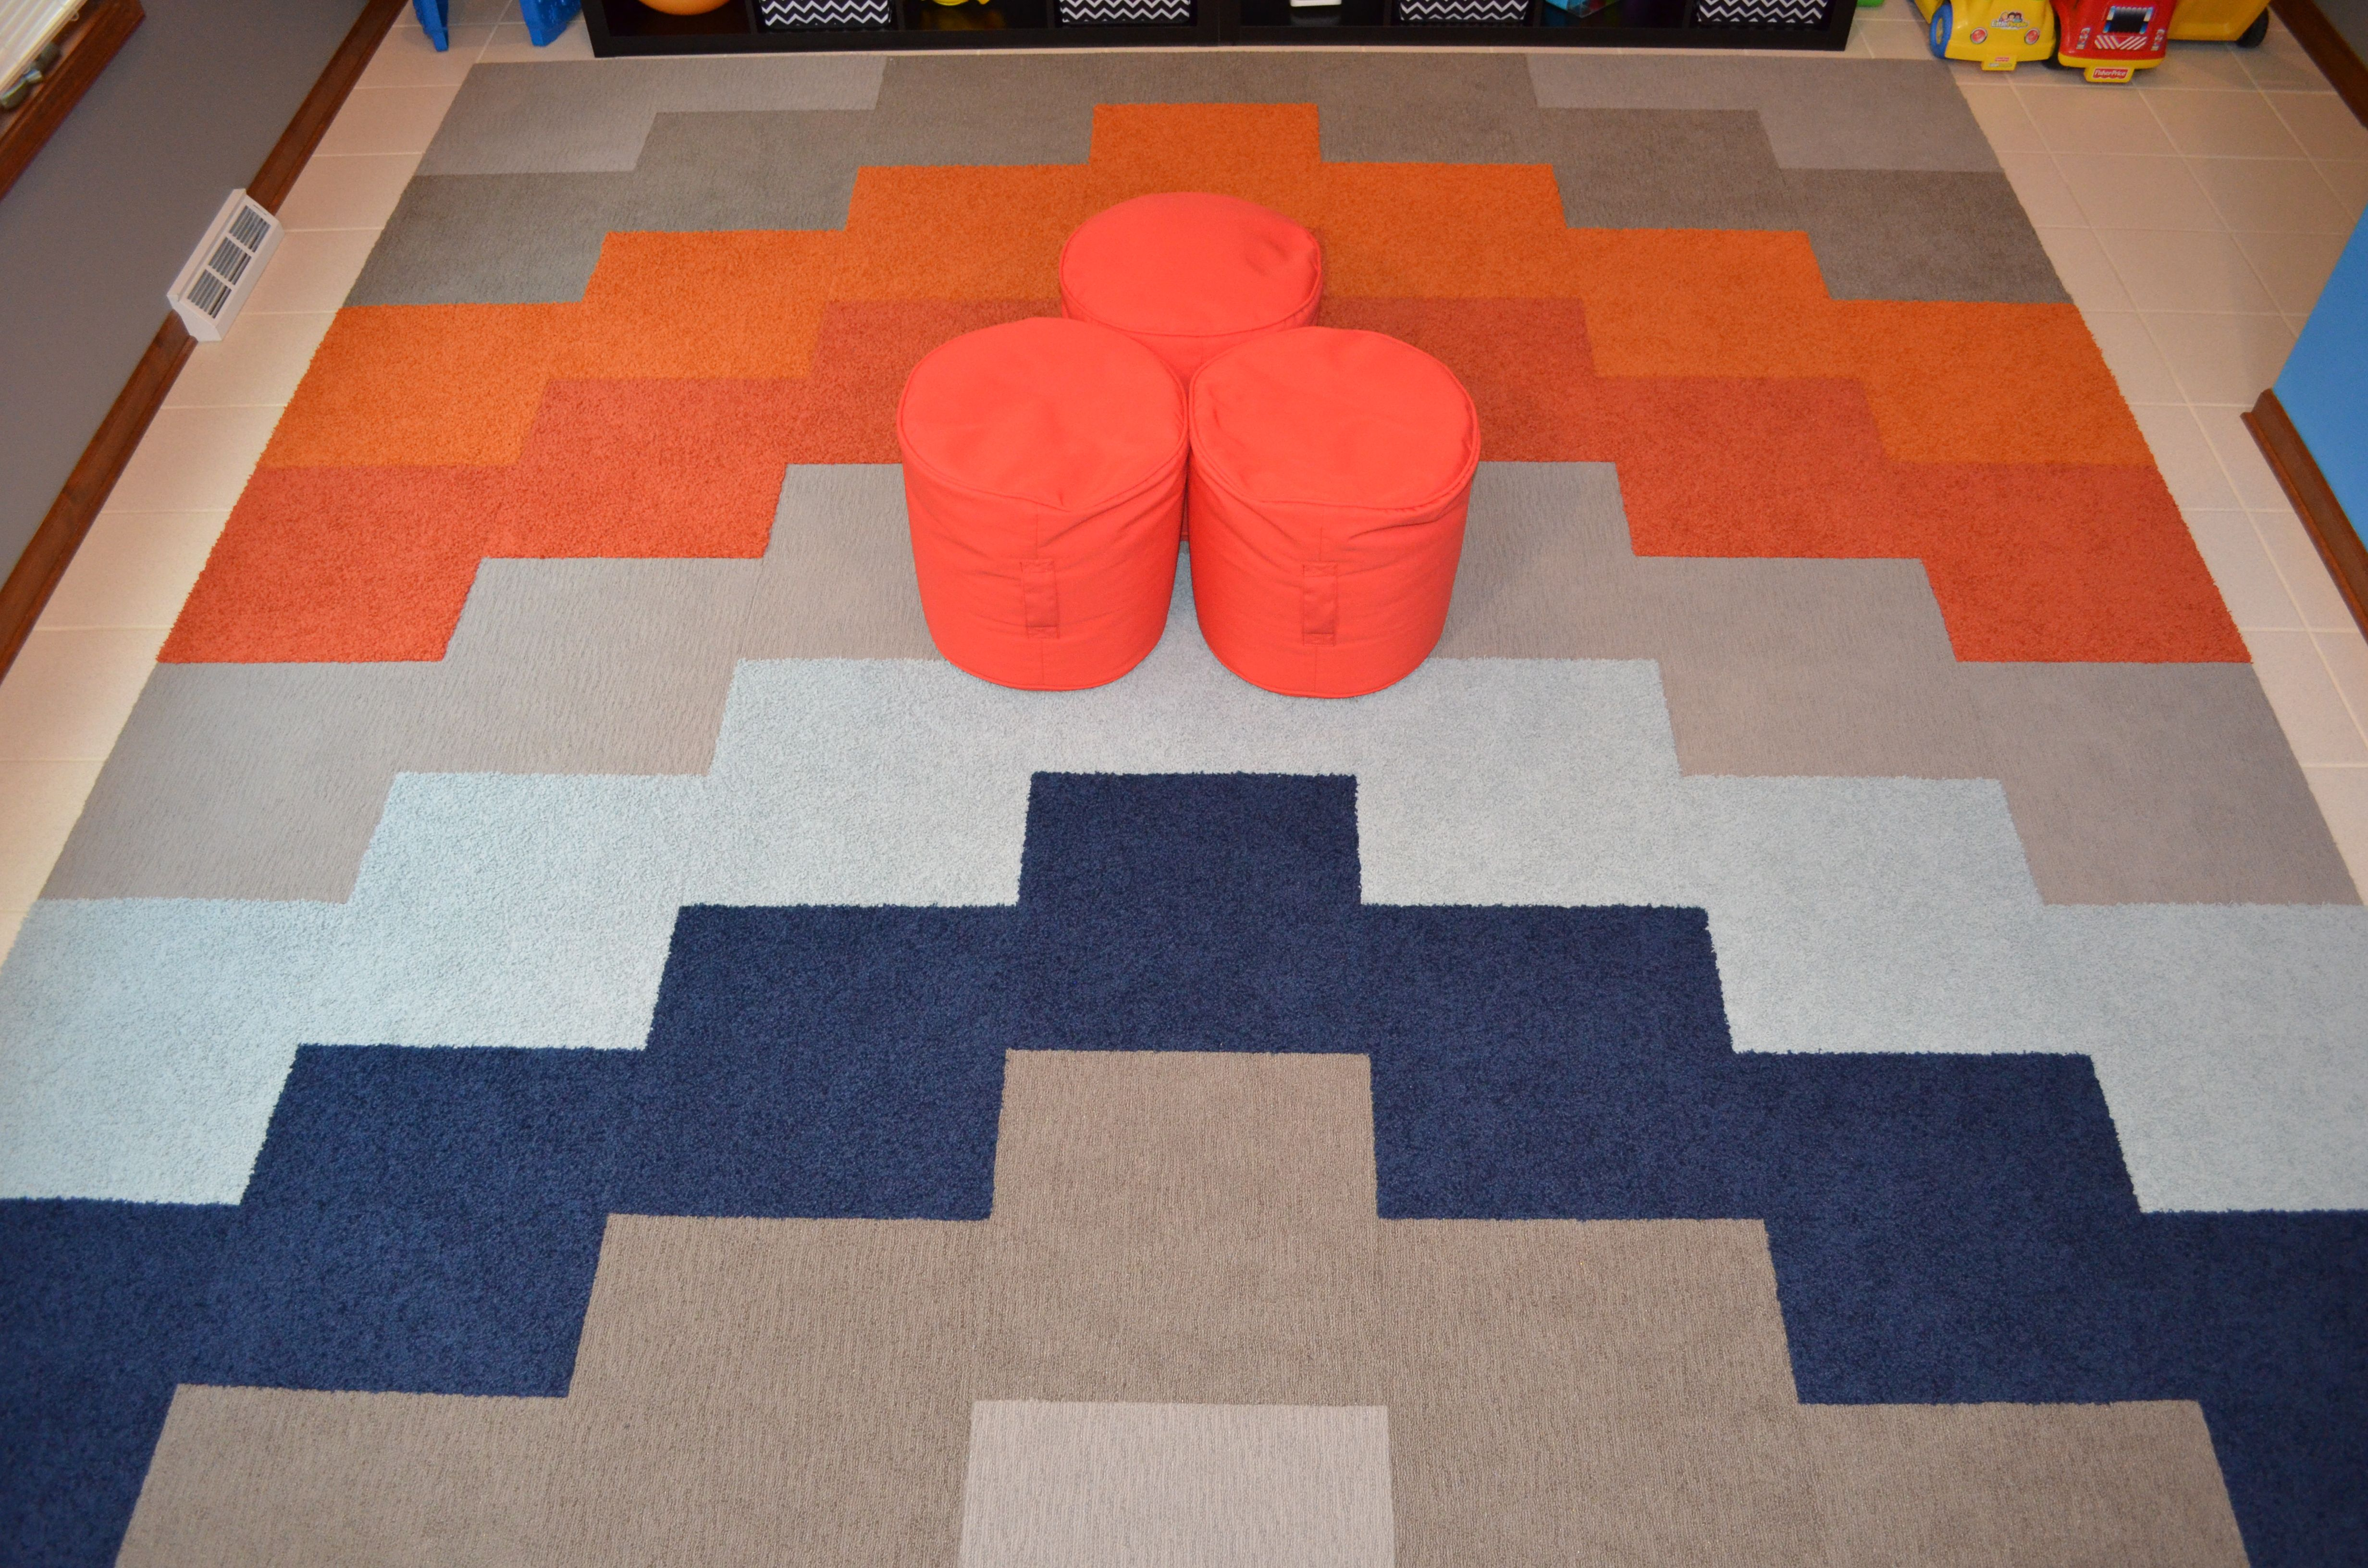 The floor in bradys playroom 56 carpet tiles from flor the floor in bradys playroom 56 carpet tiles from flor flor playroom dailygadgetfo Images